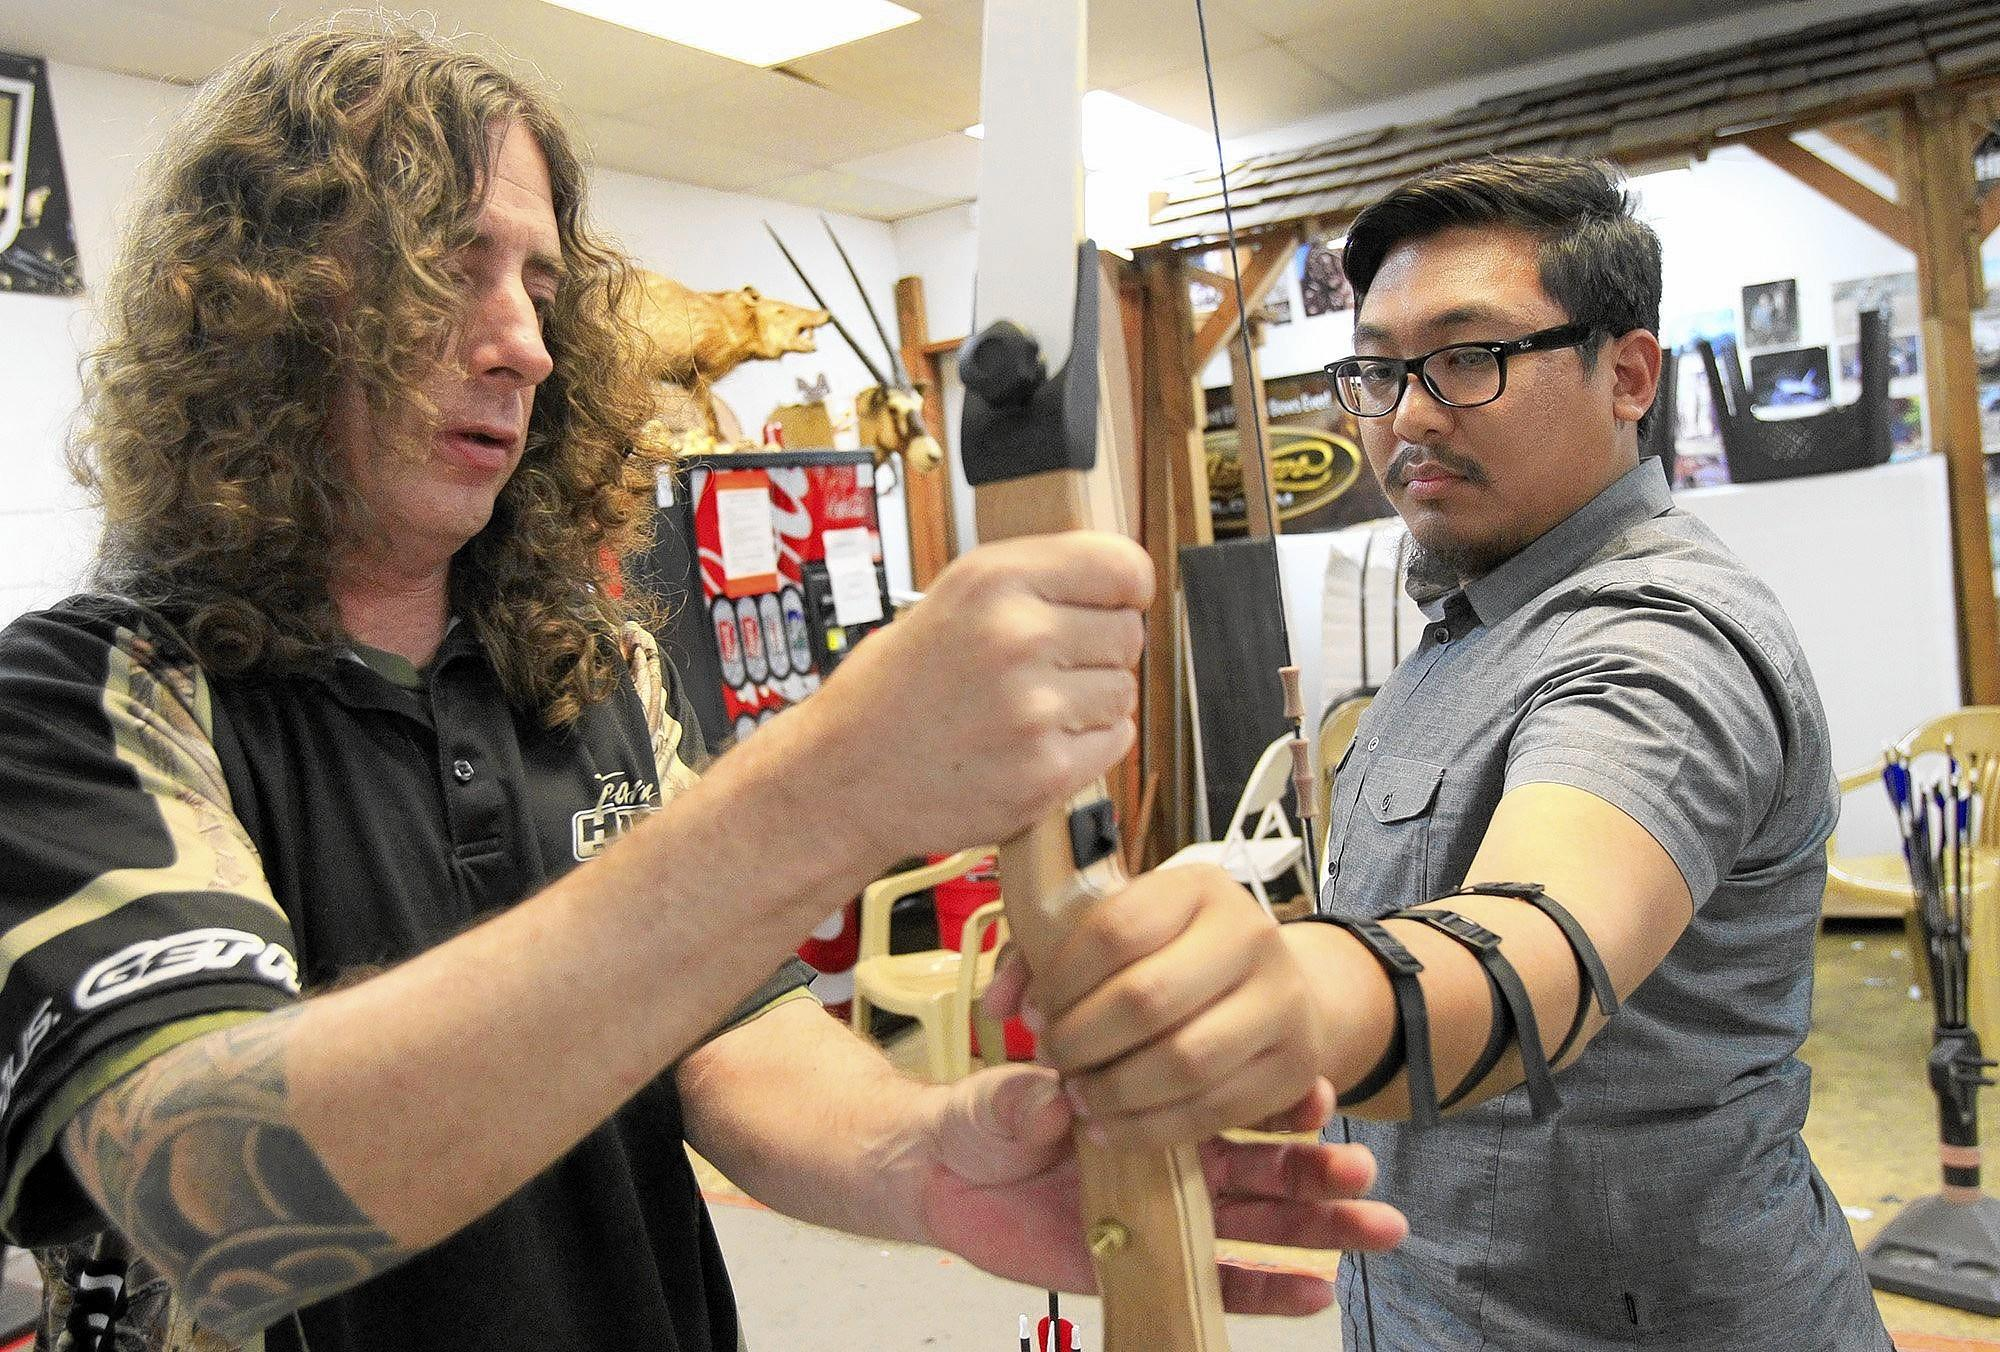 Manager Kevin Clark, left, instructs HB Independent reporter Anthony Clark Carpio on where to position his hands on a bow at Orange County Archery in Fountain Valley on Friday.